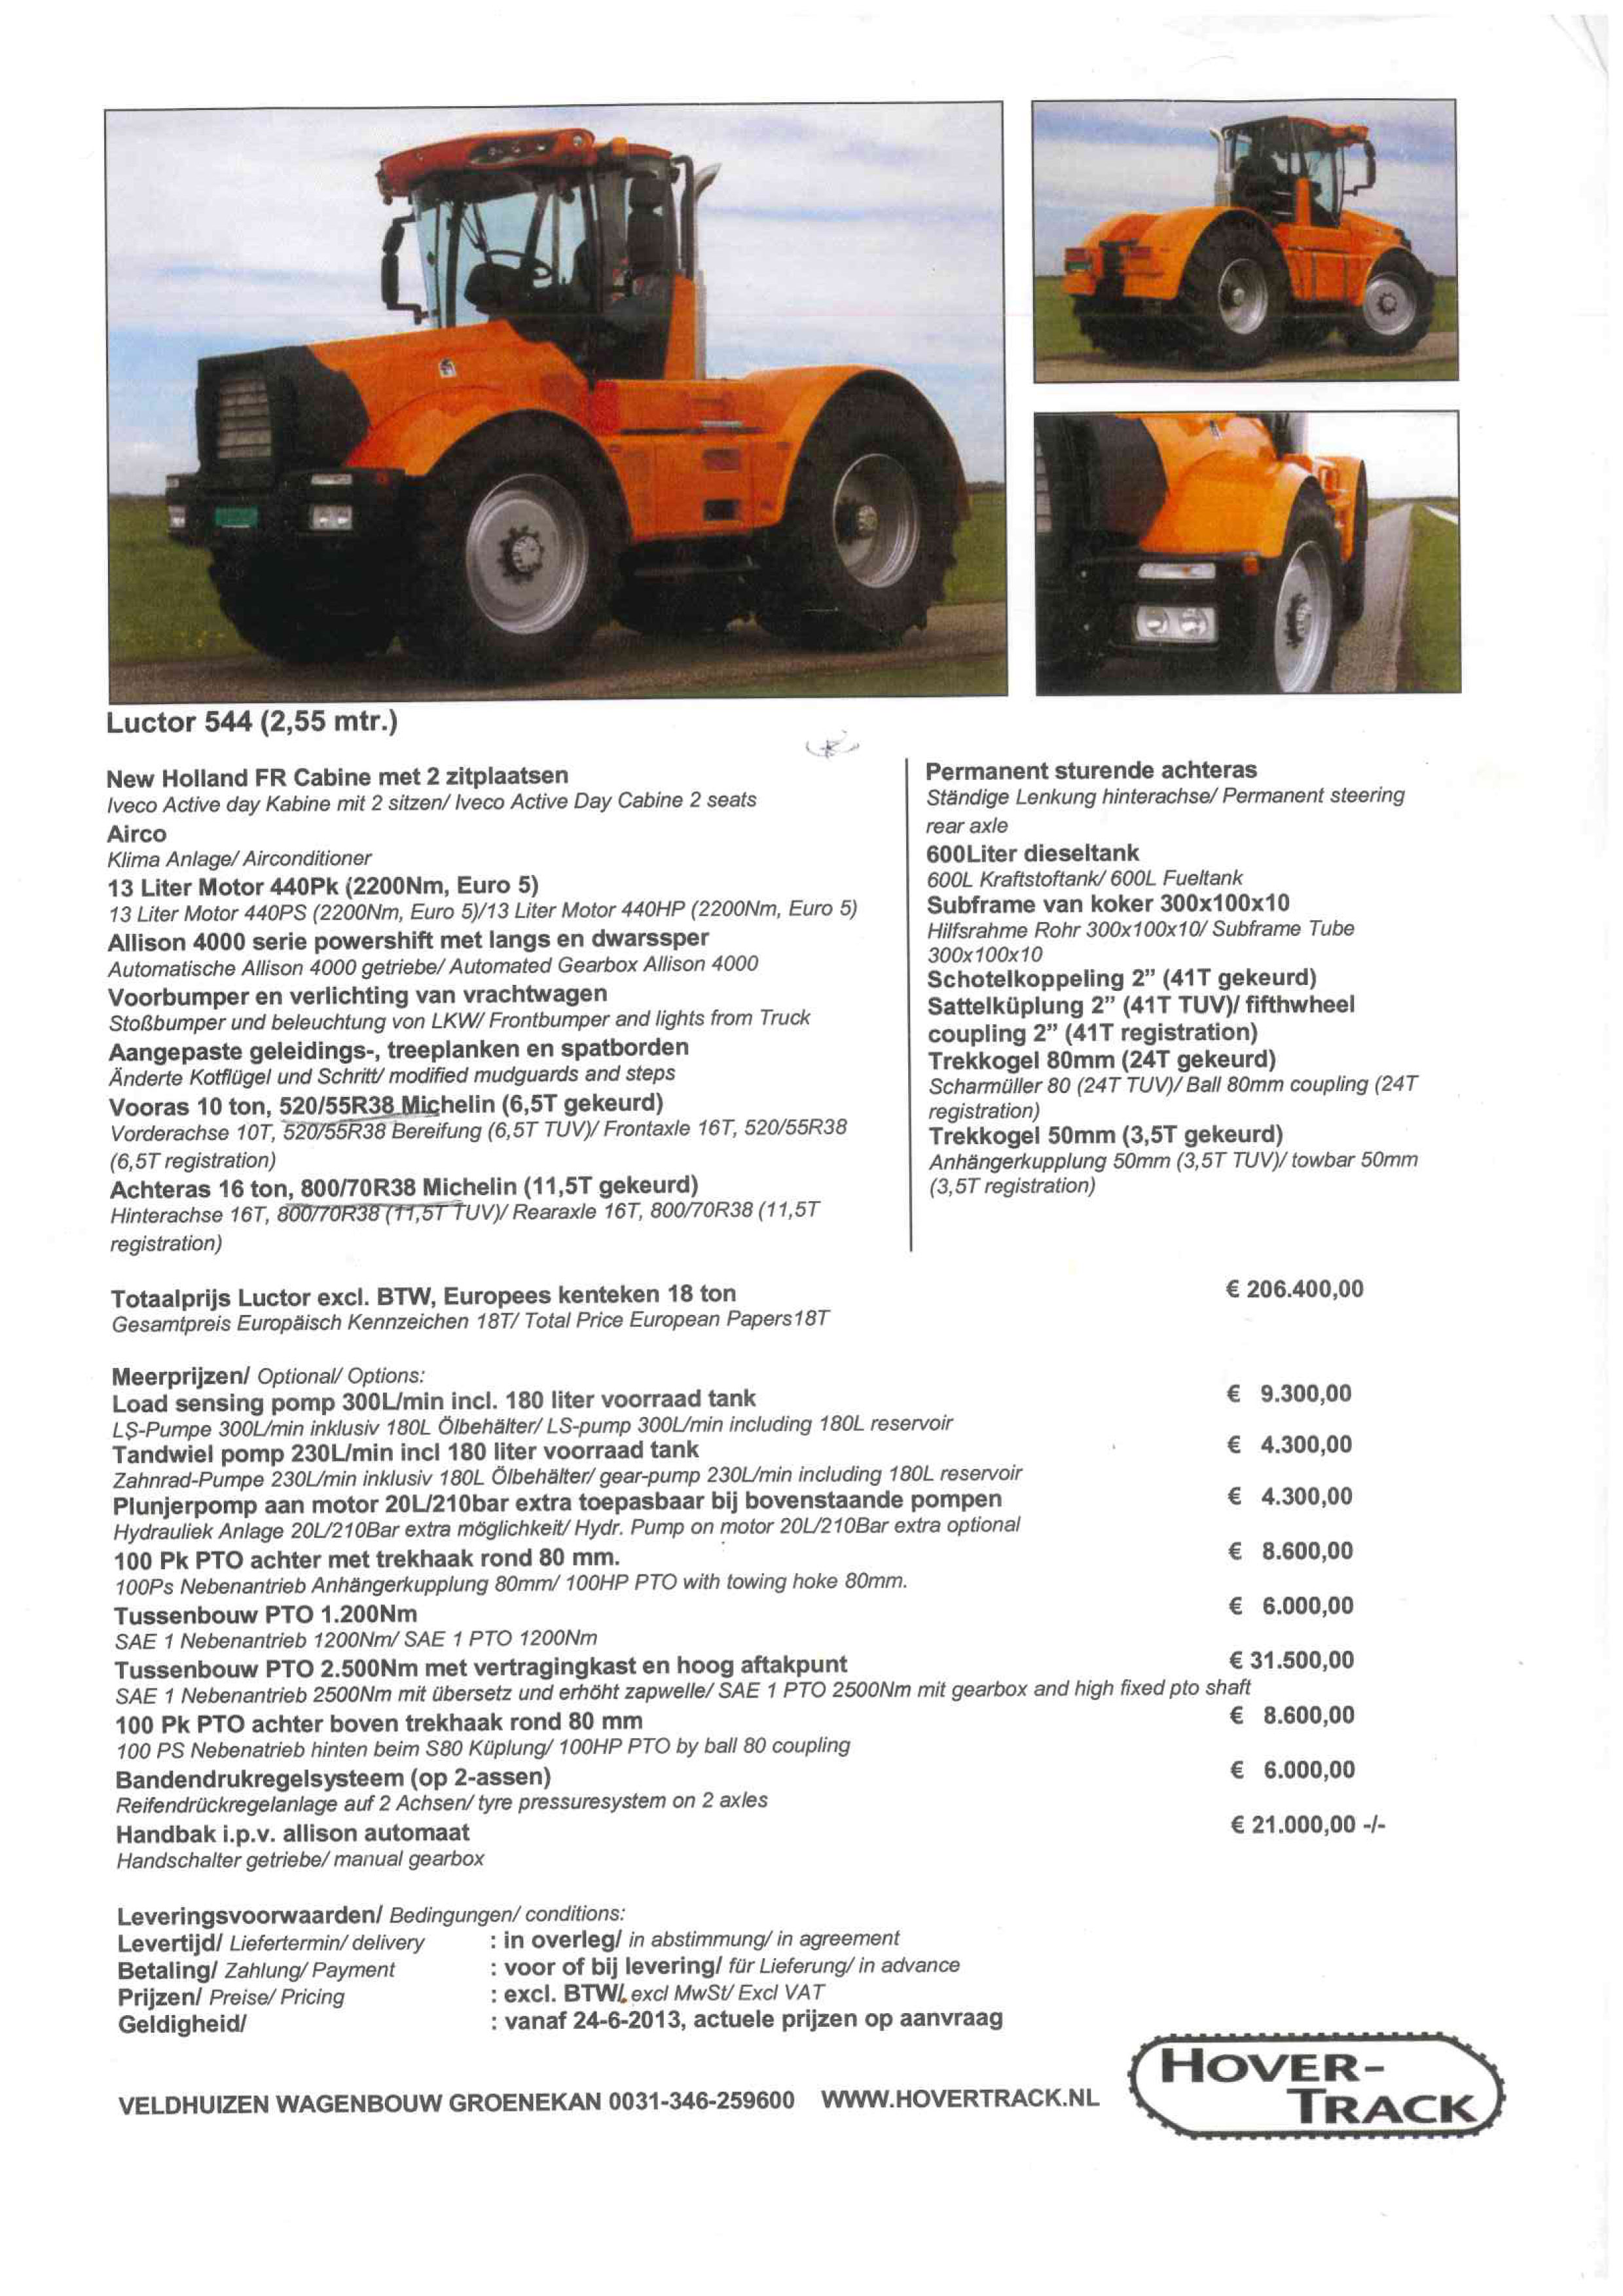 luctor-544